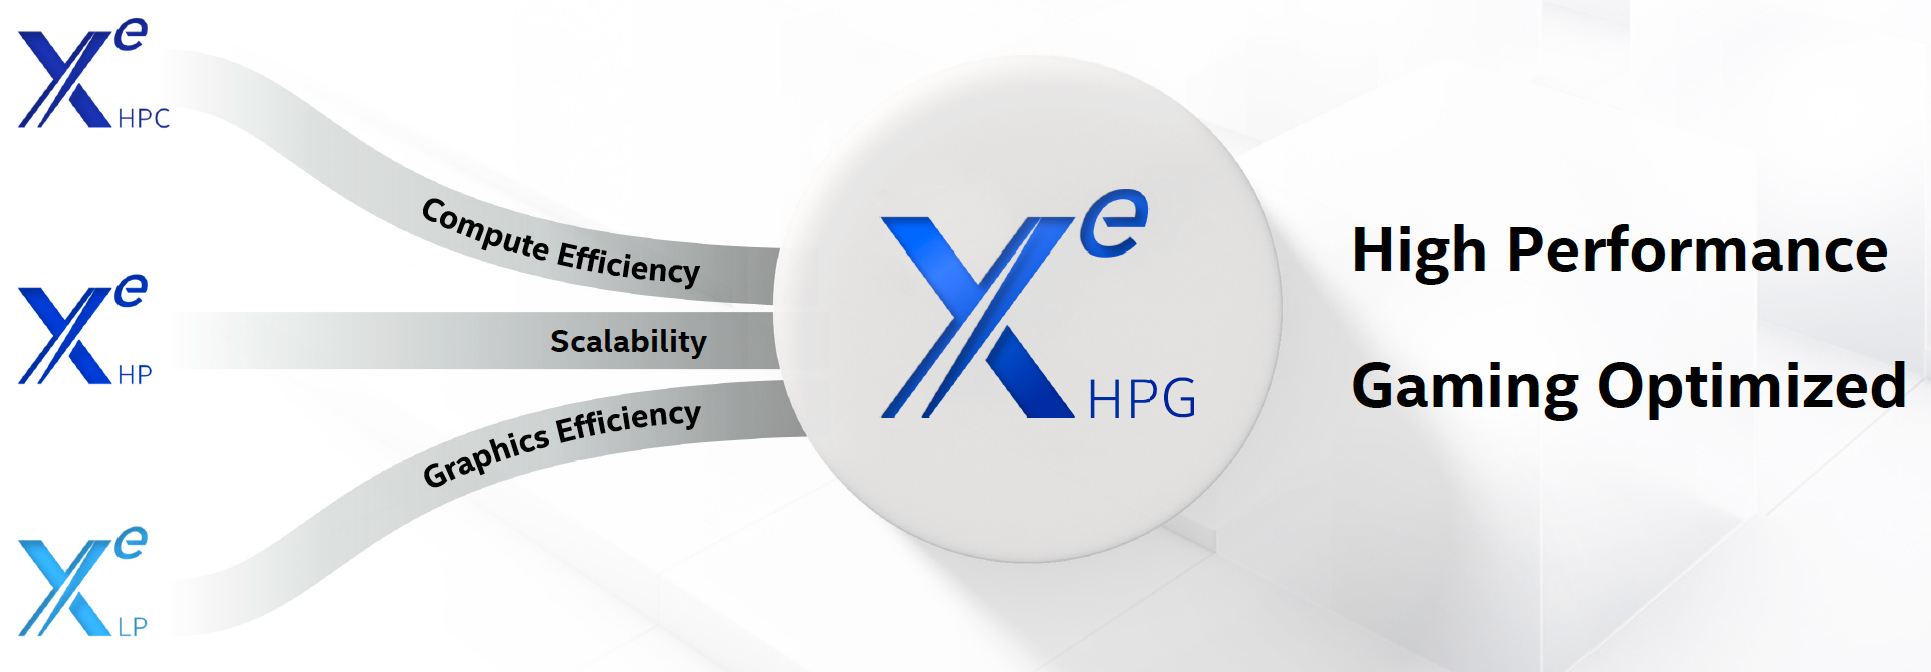 Intel Xe HPG Official Material by Intel